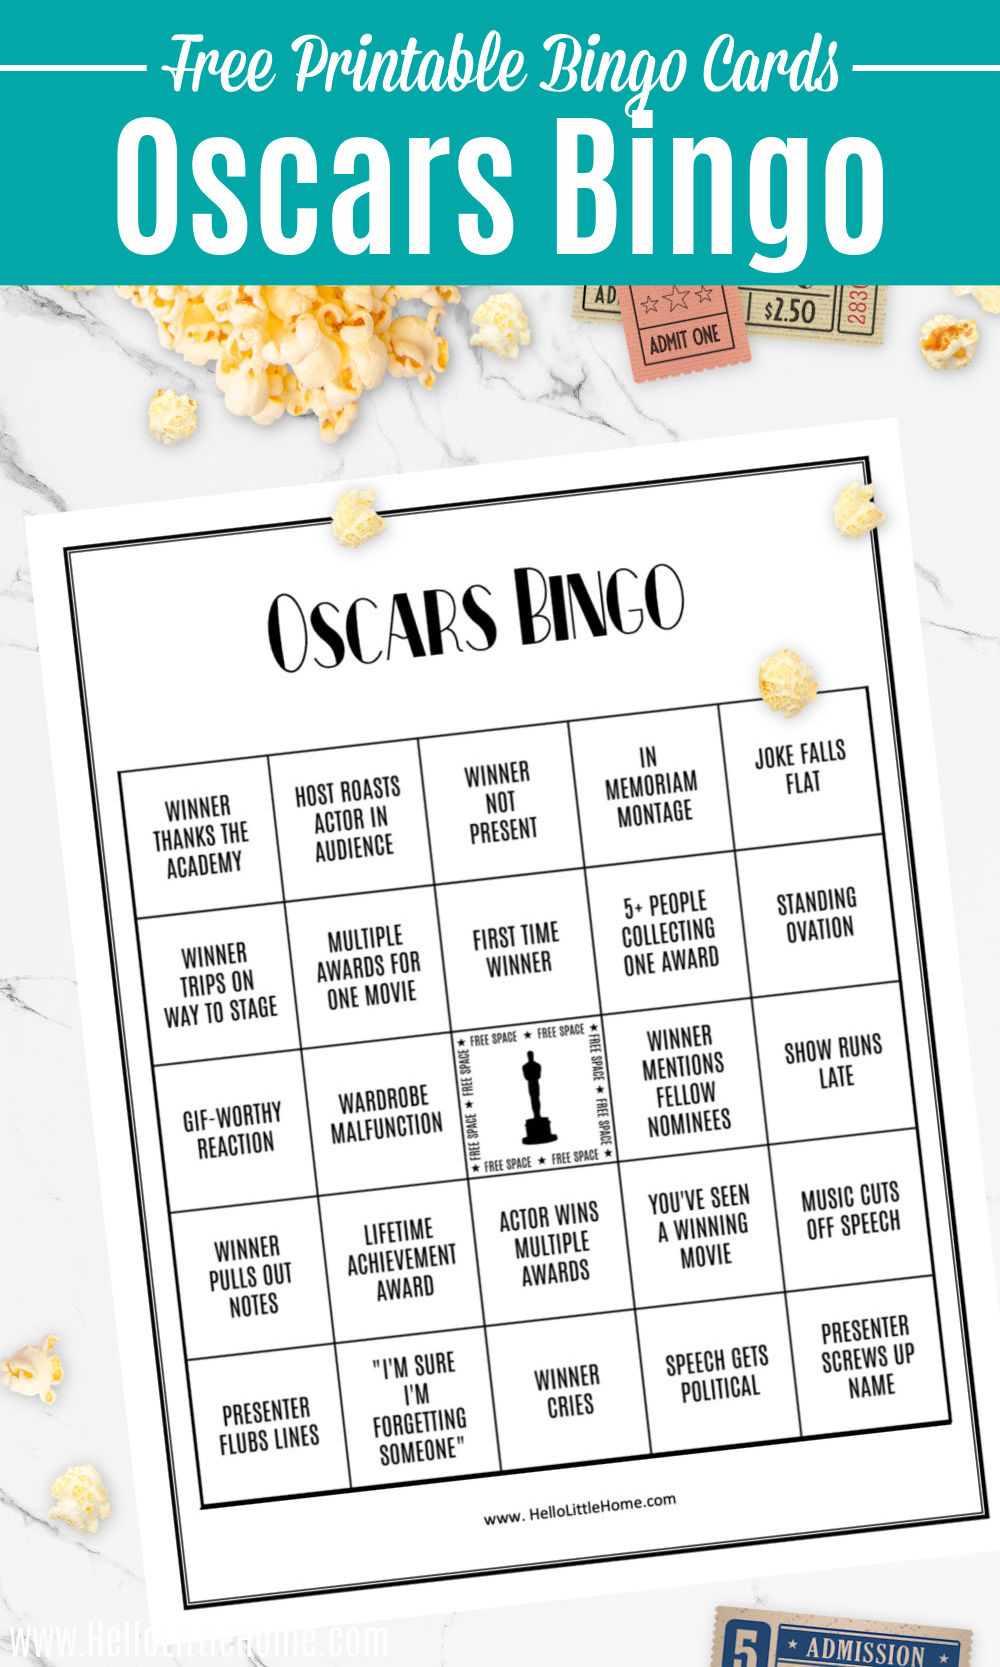 The printable Oscars Bingo Card on a table with popcorn and movie tickets.